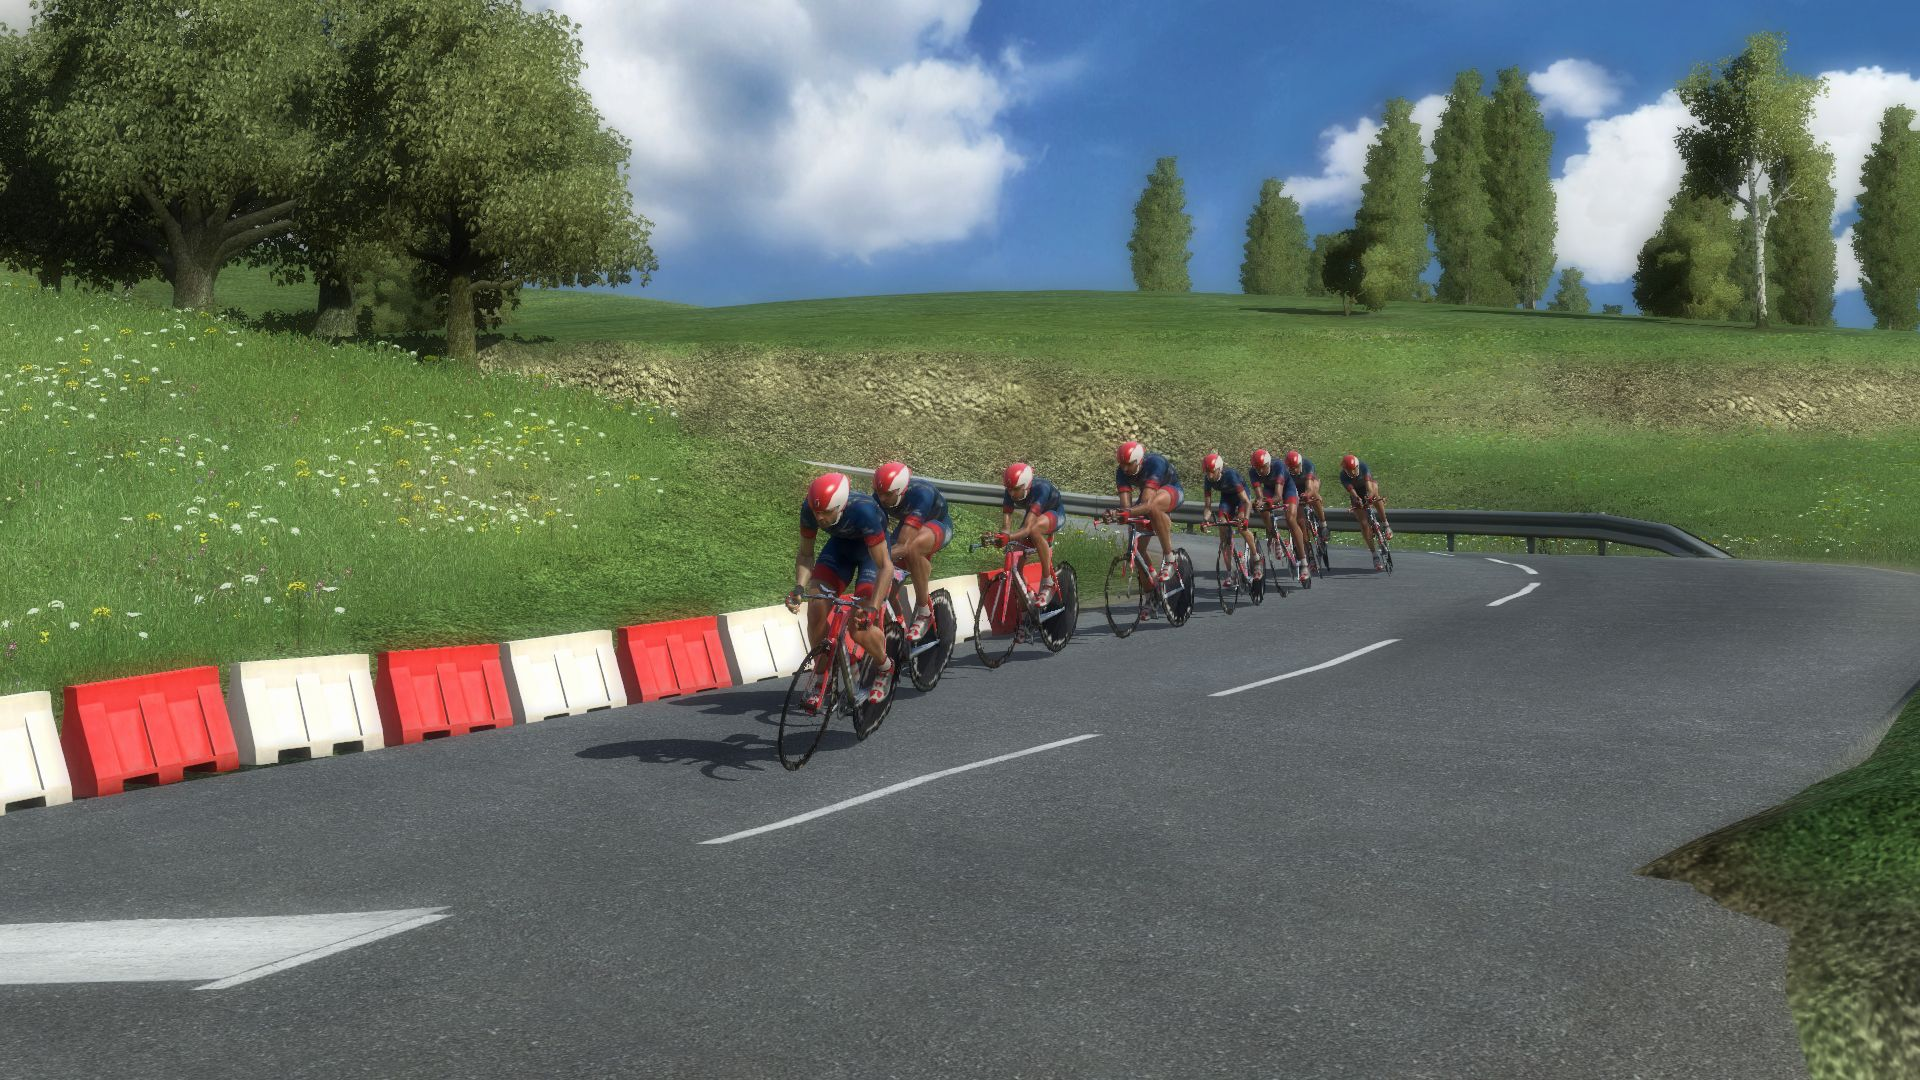 pcmdaily.com/images/mg/2019/Races/HC/Slovenie/mg19_slo_s01_20.jpg